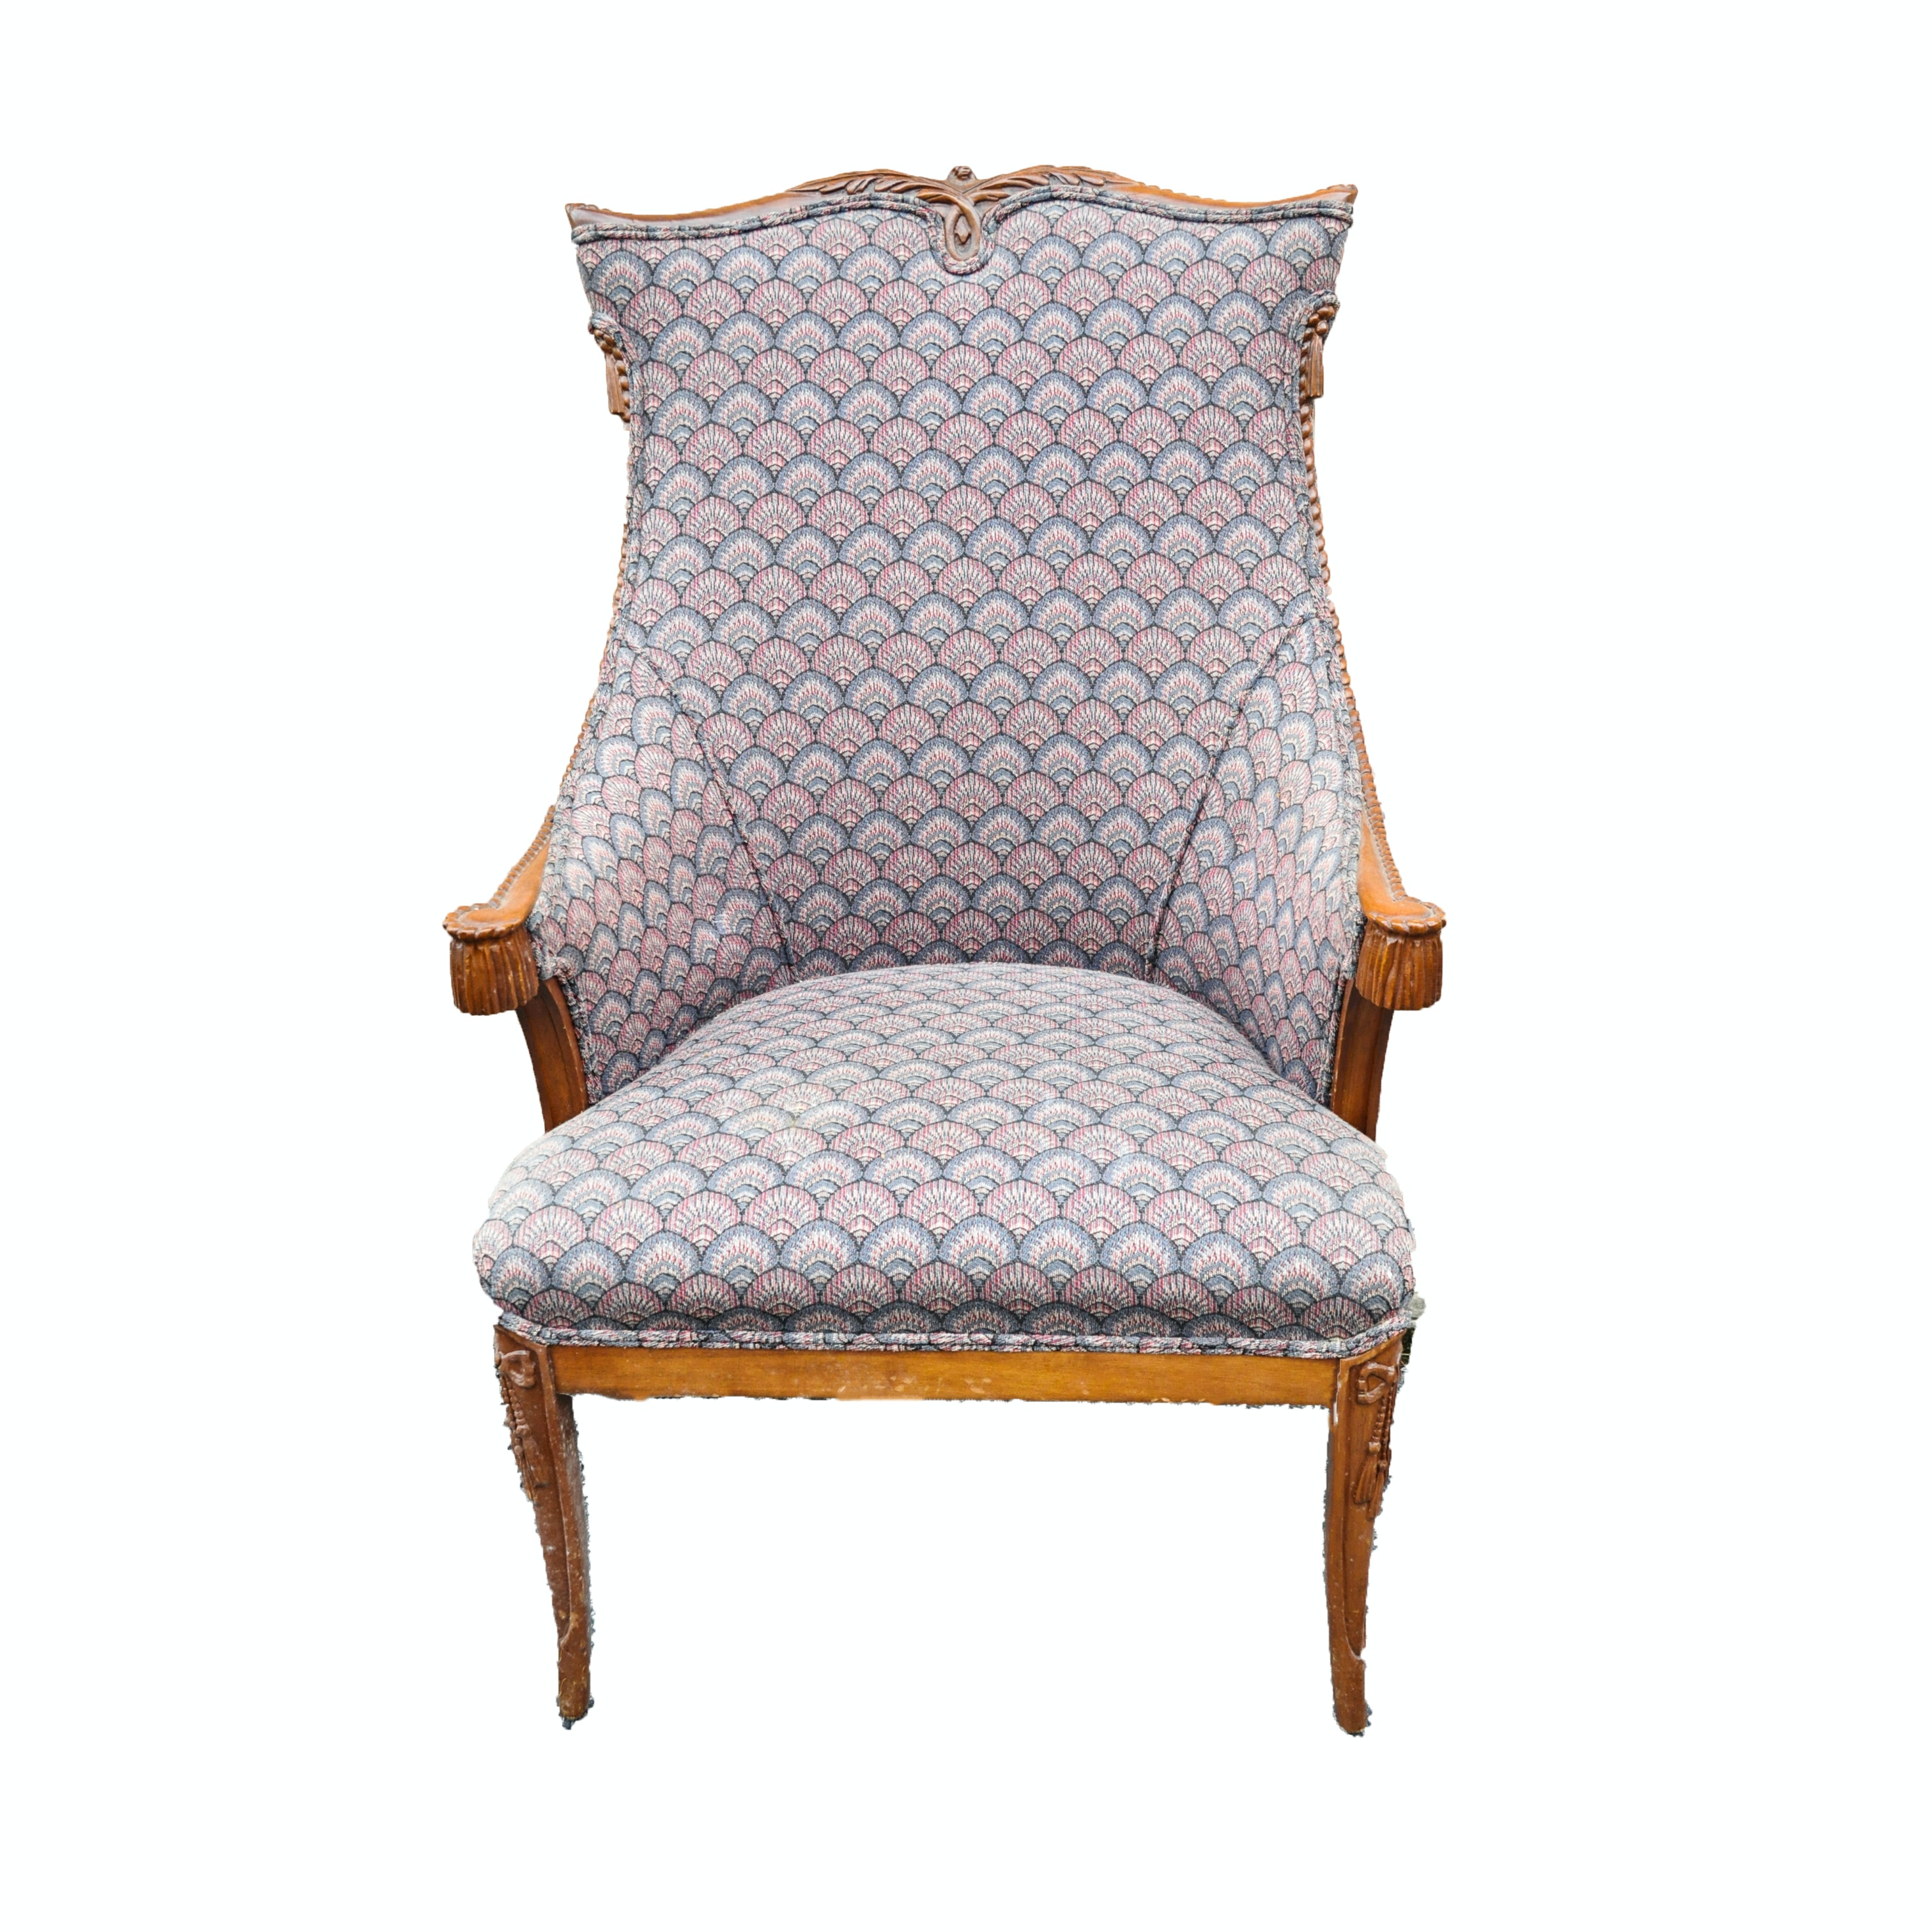 Vintage Bergere Chair with Rope and Tassel Carvings